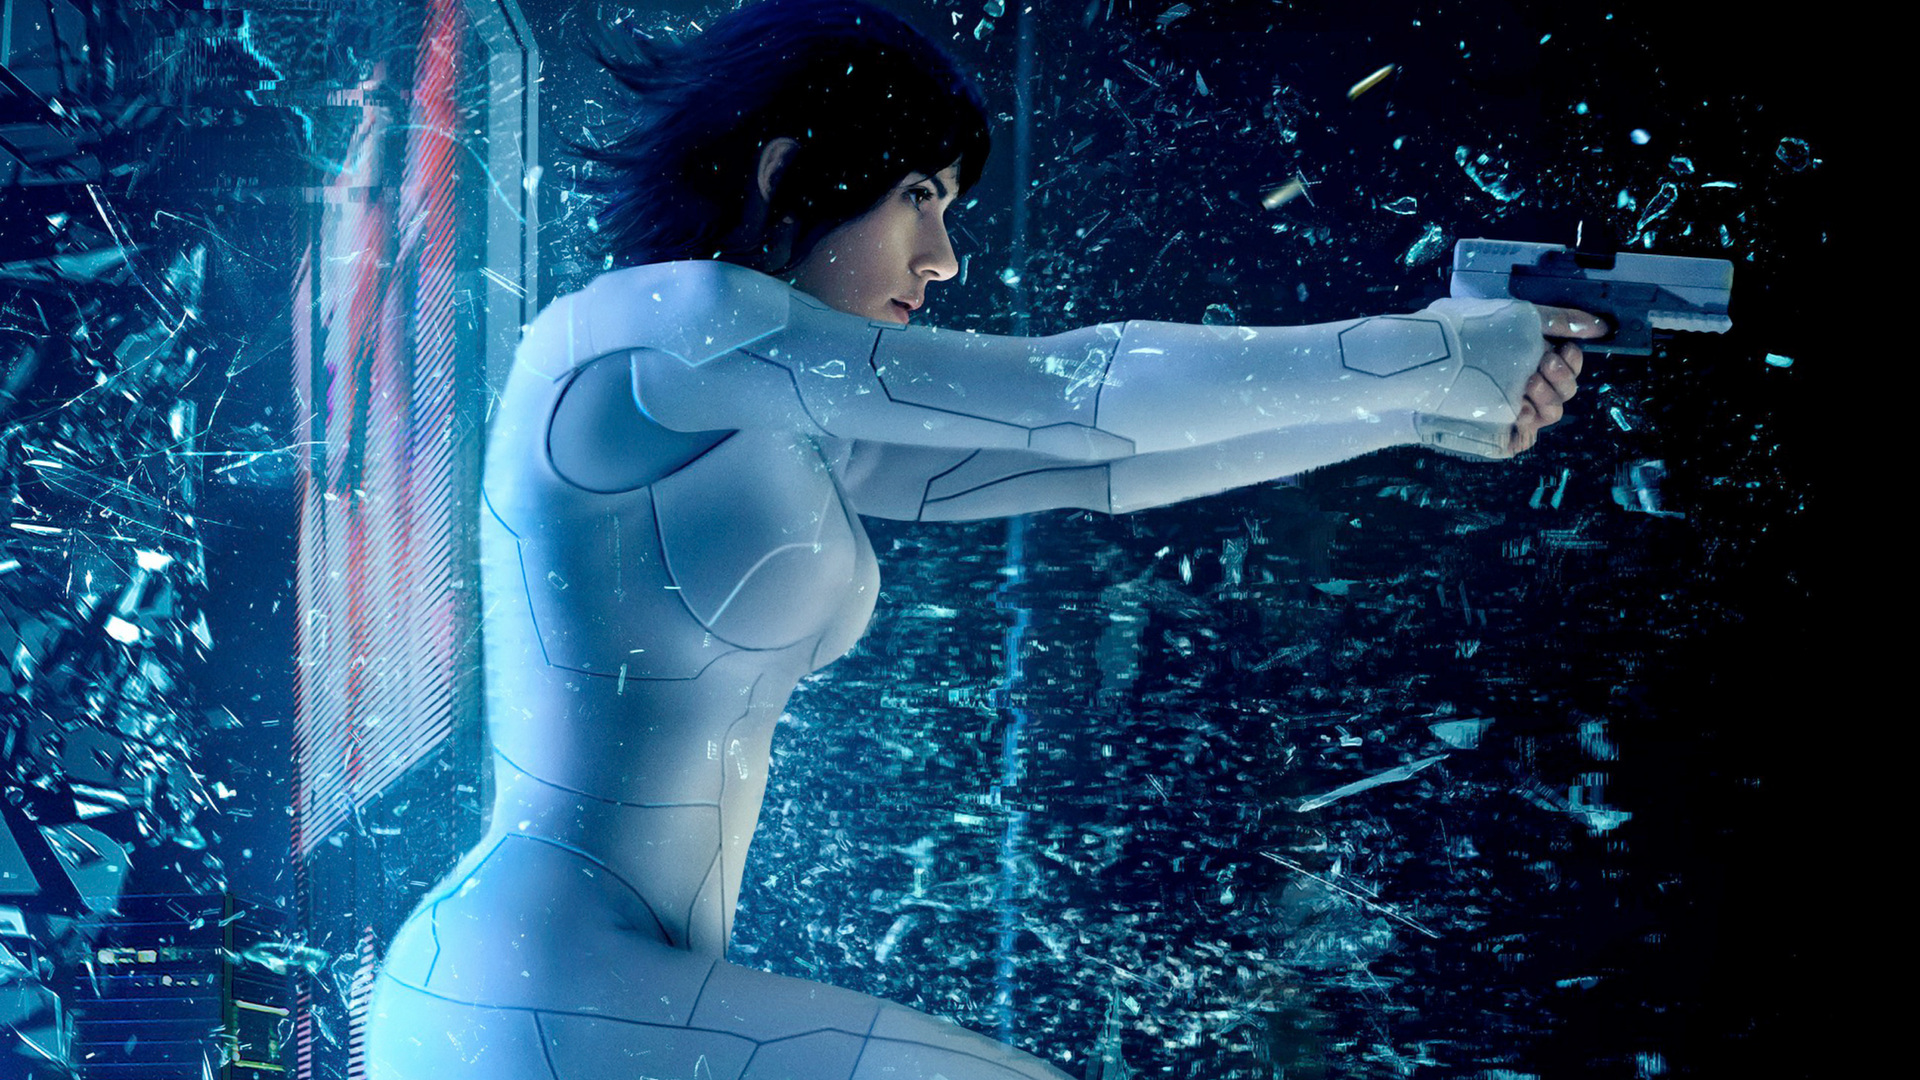 1920x1080 Ghost In The Shell 2017 Movie Laptop Full Hd 1080p Hd 4k